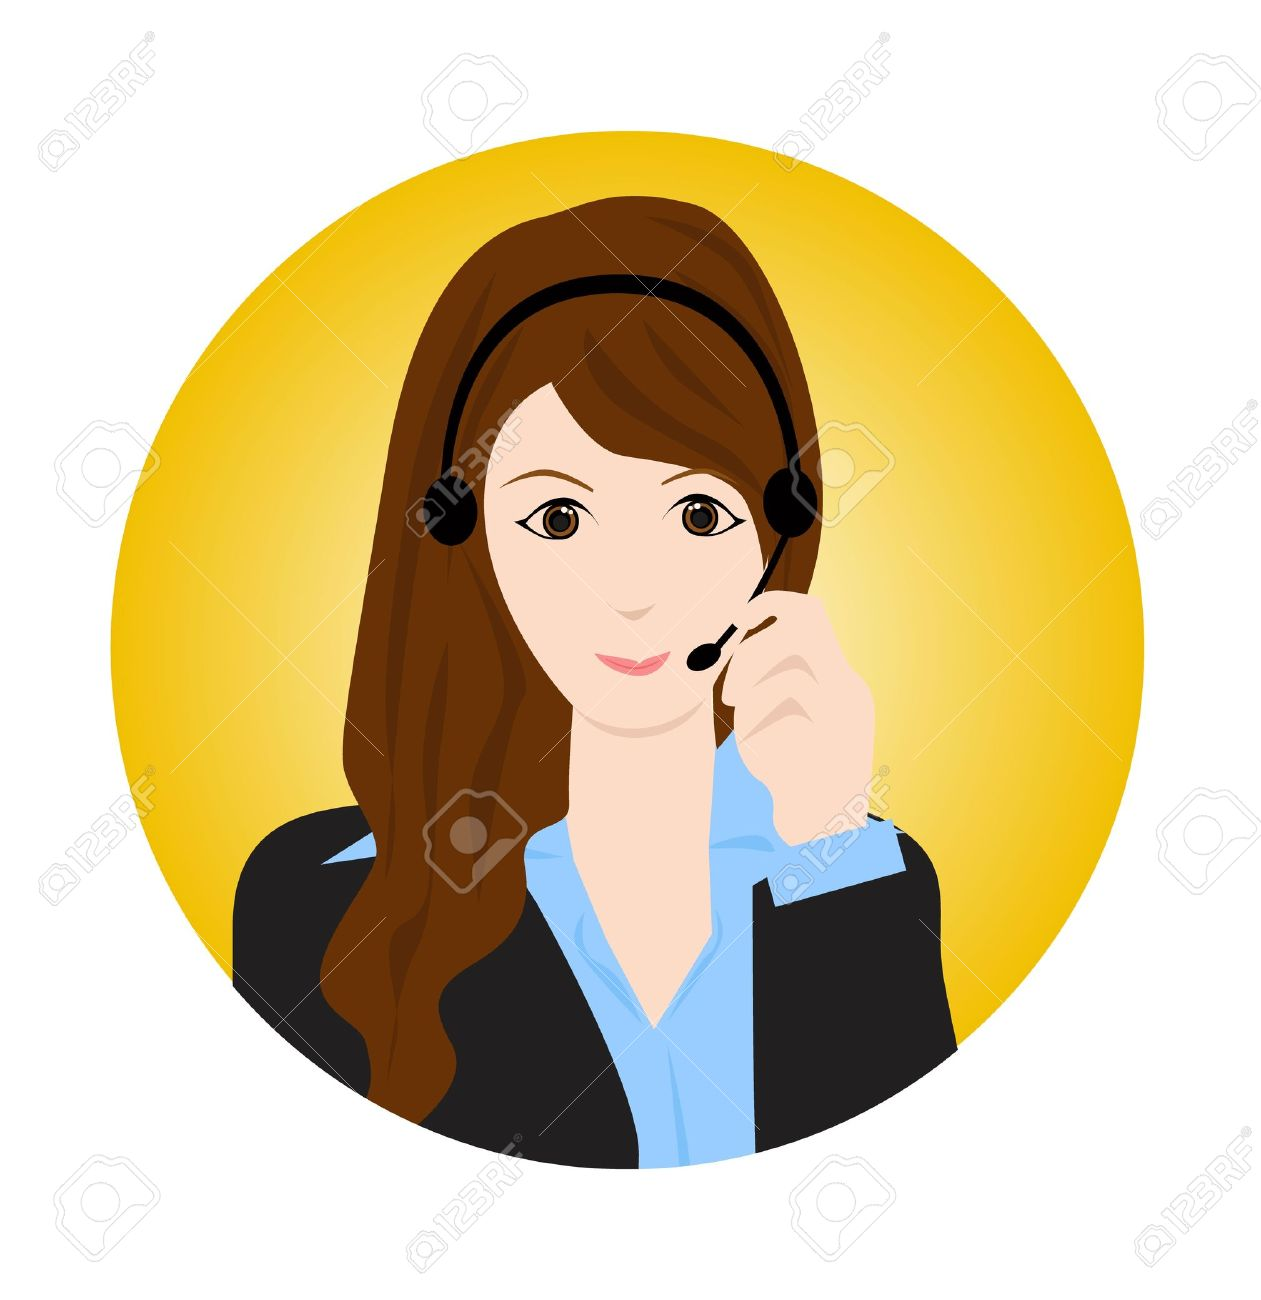 Customer service agent clipart 1 » Clipart Station.